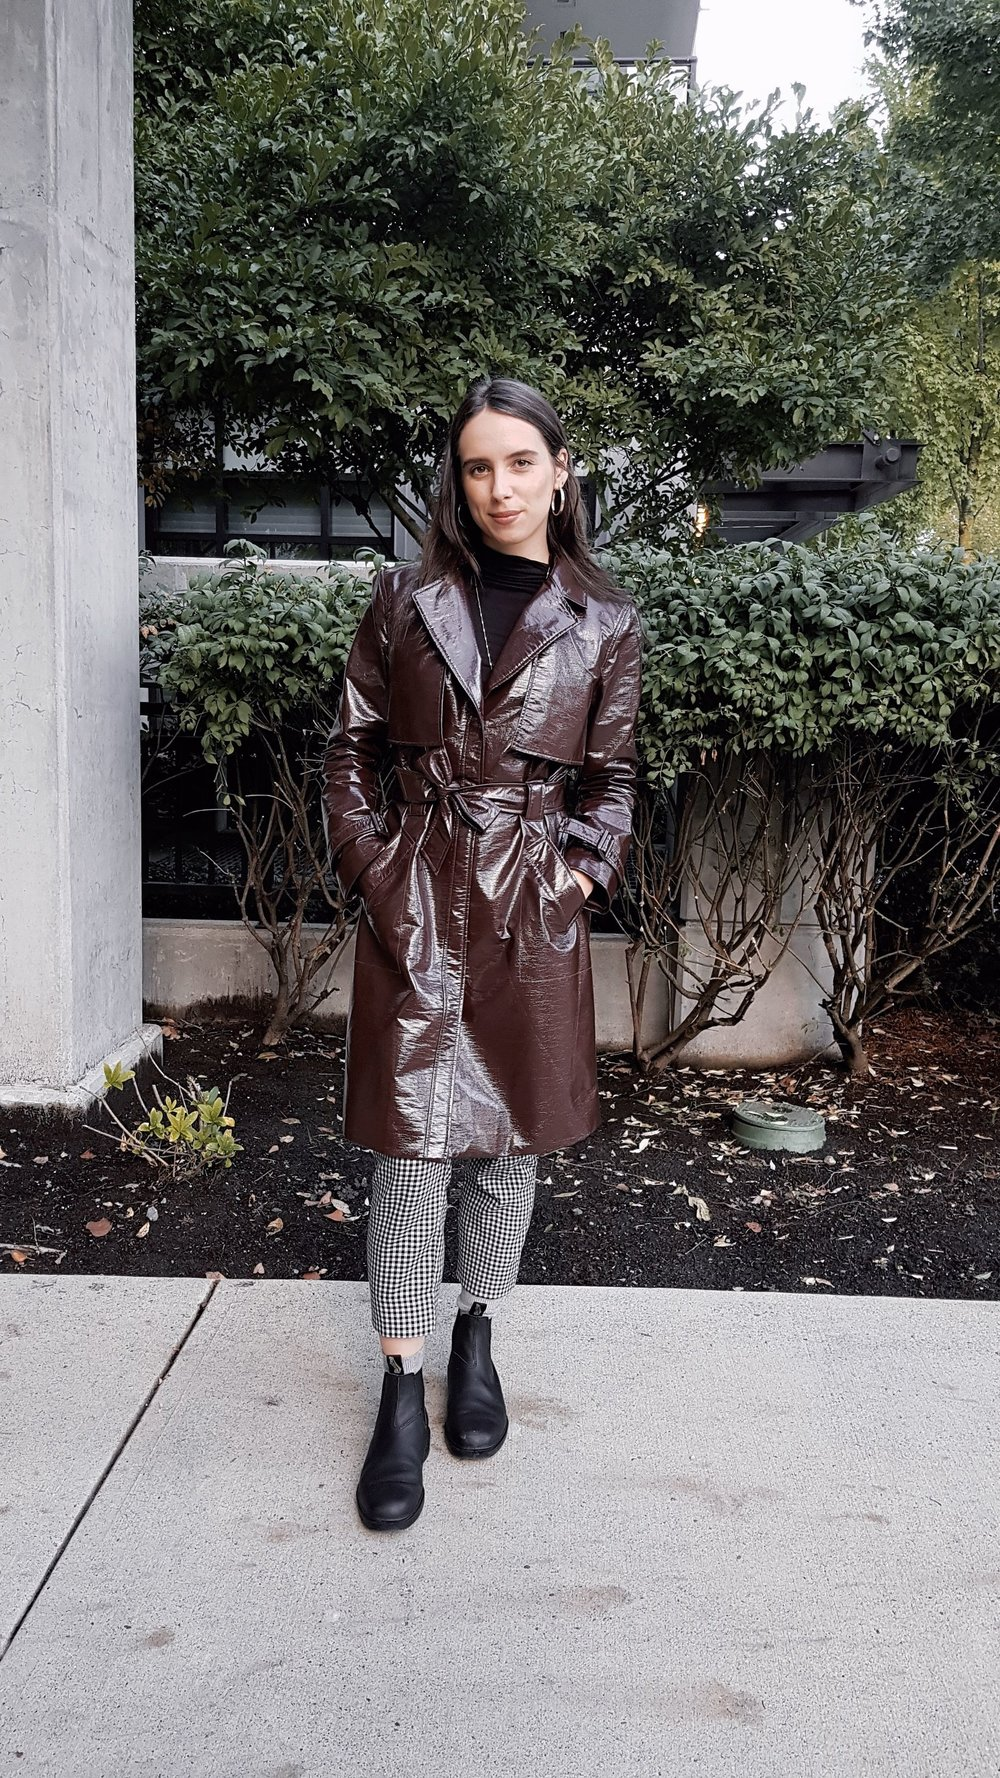 MONDAY - Guess by Marciano trench coat, Dynamite turtleneck, Zumiez pants, Blundstone boots